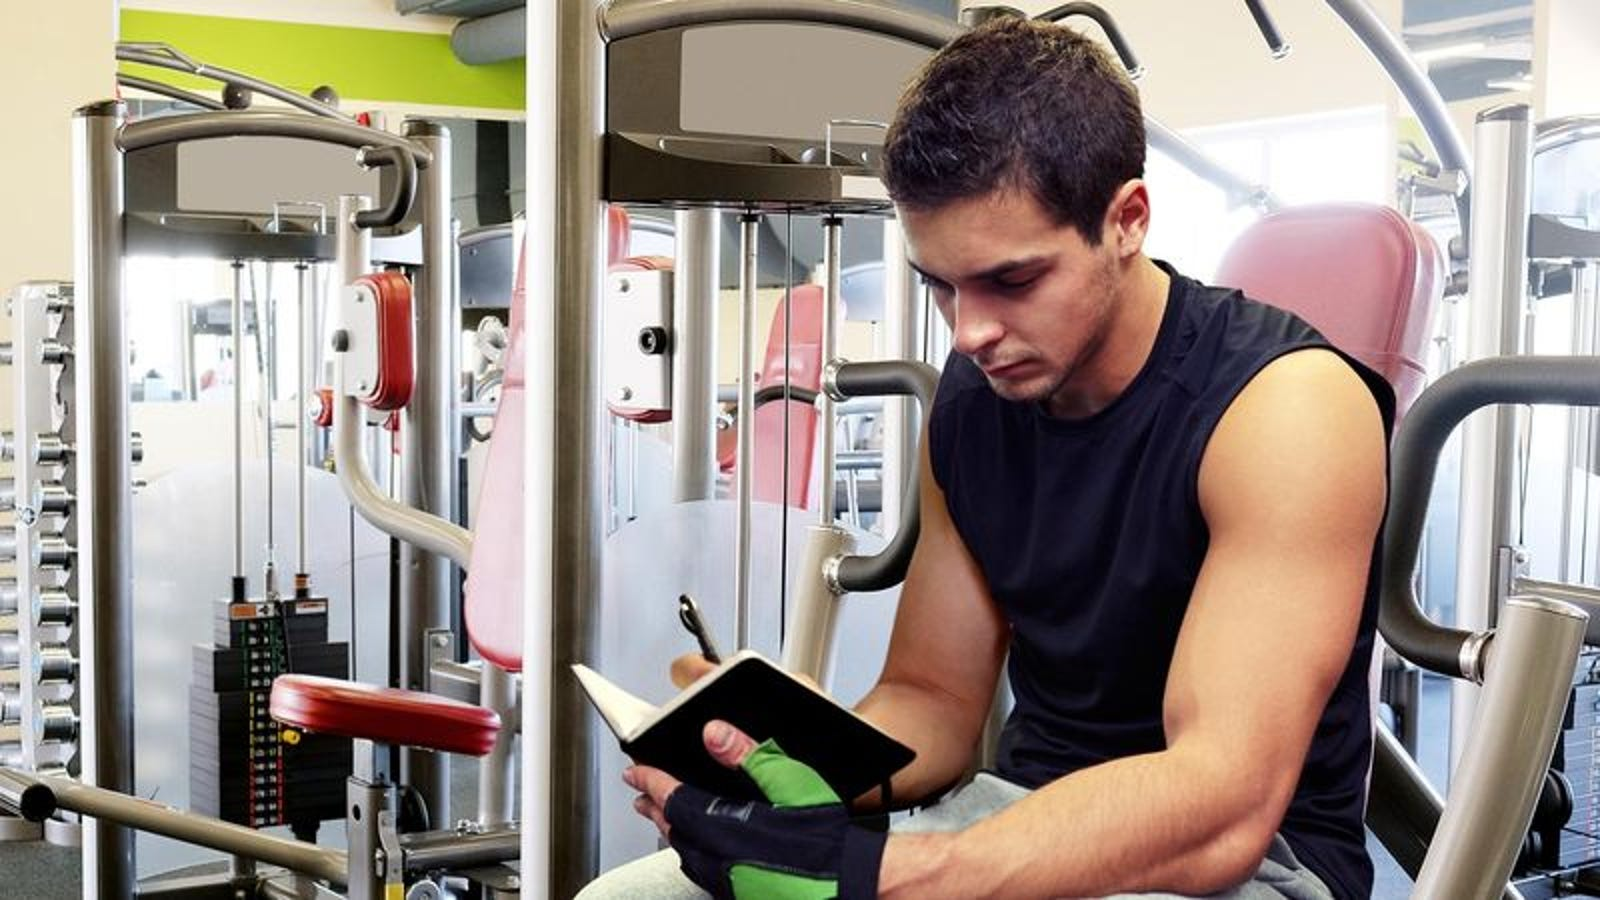 Guy At Gym Has Precious Little Diary To Keep Track Of All His Exercises